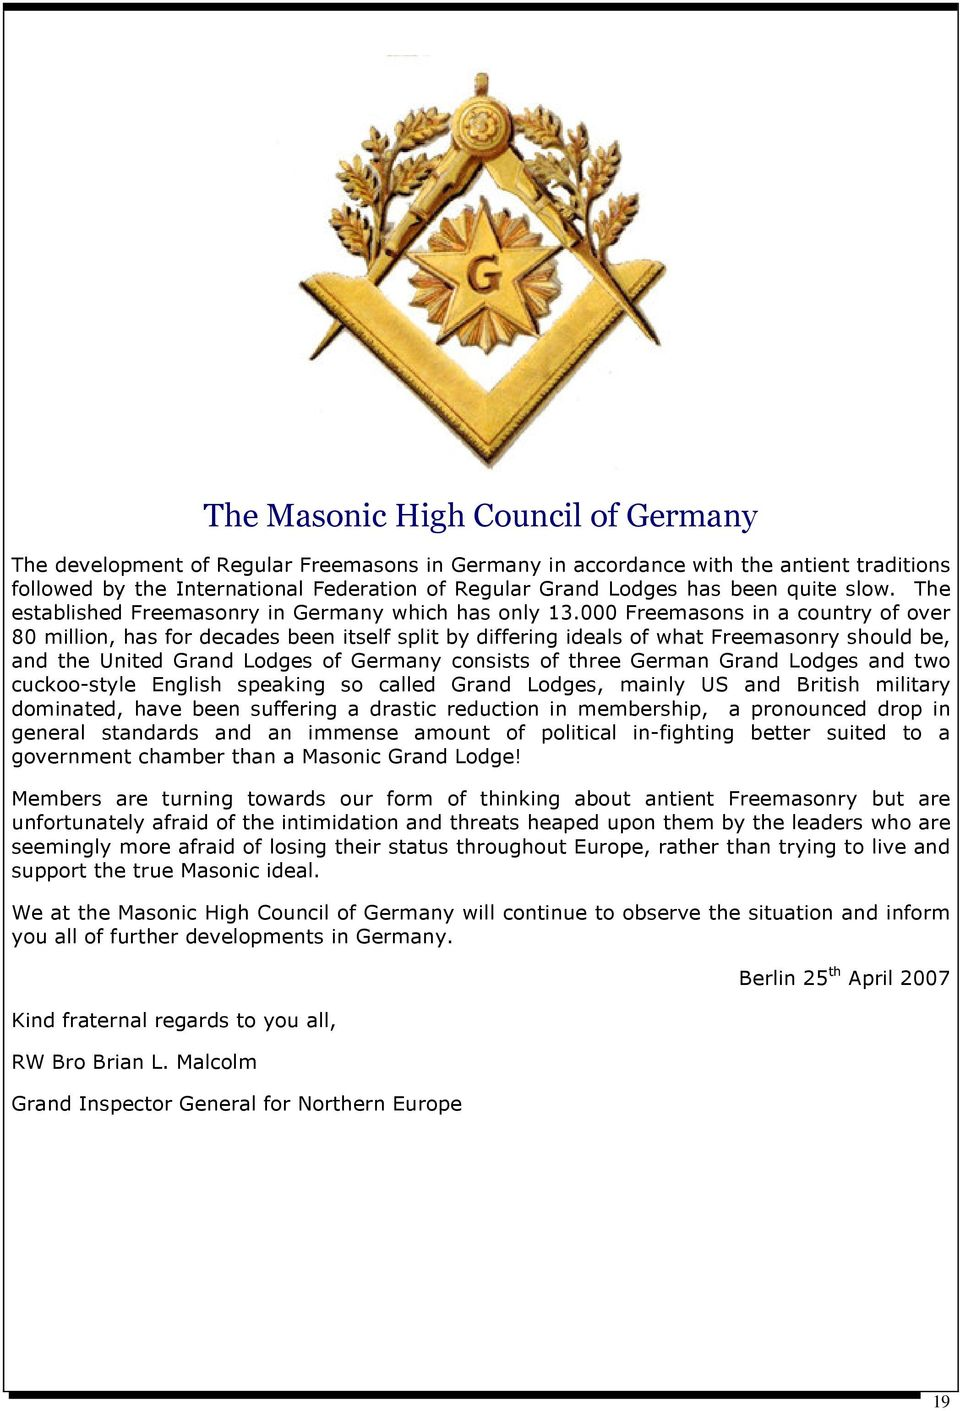 000 Freemasons in a country of over 80 million, has for decades been itself split by differing ideals of what Freemasonry should be, and the United Grand Lodges of Germany consists of three German